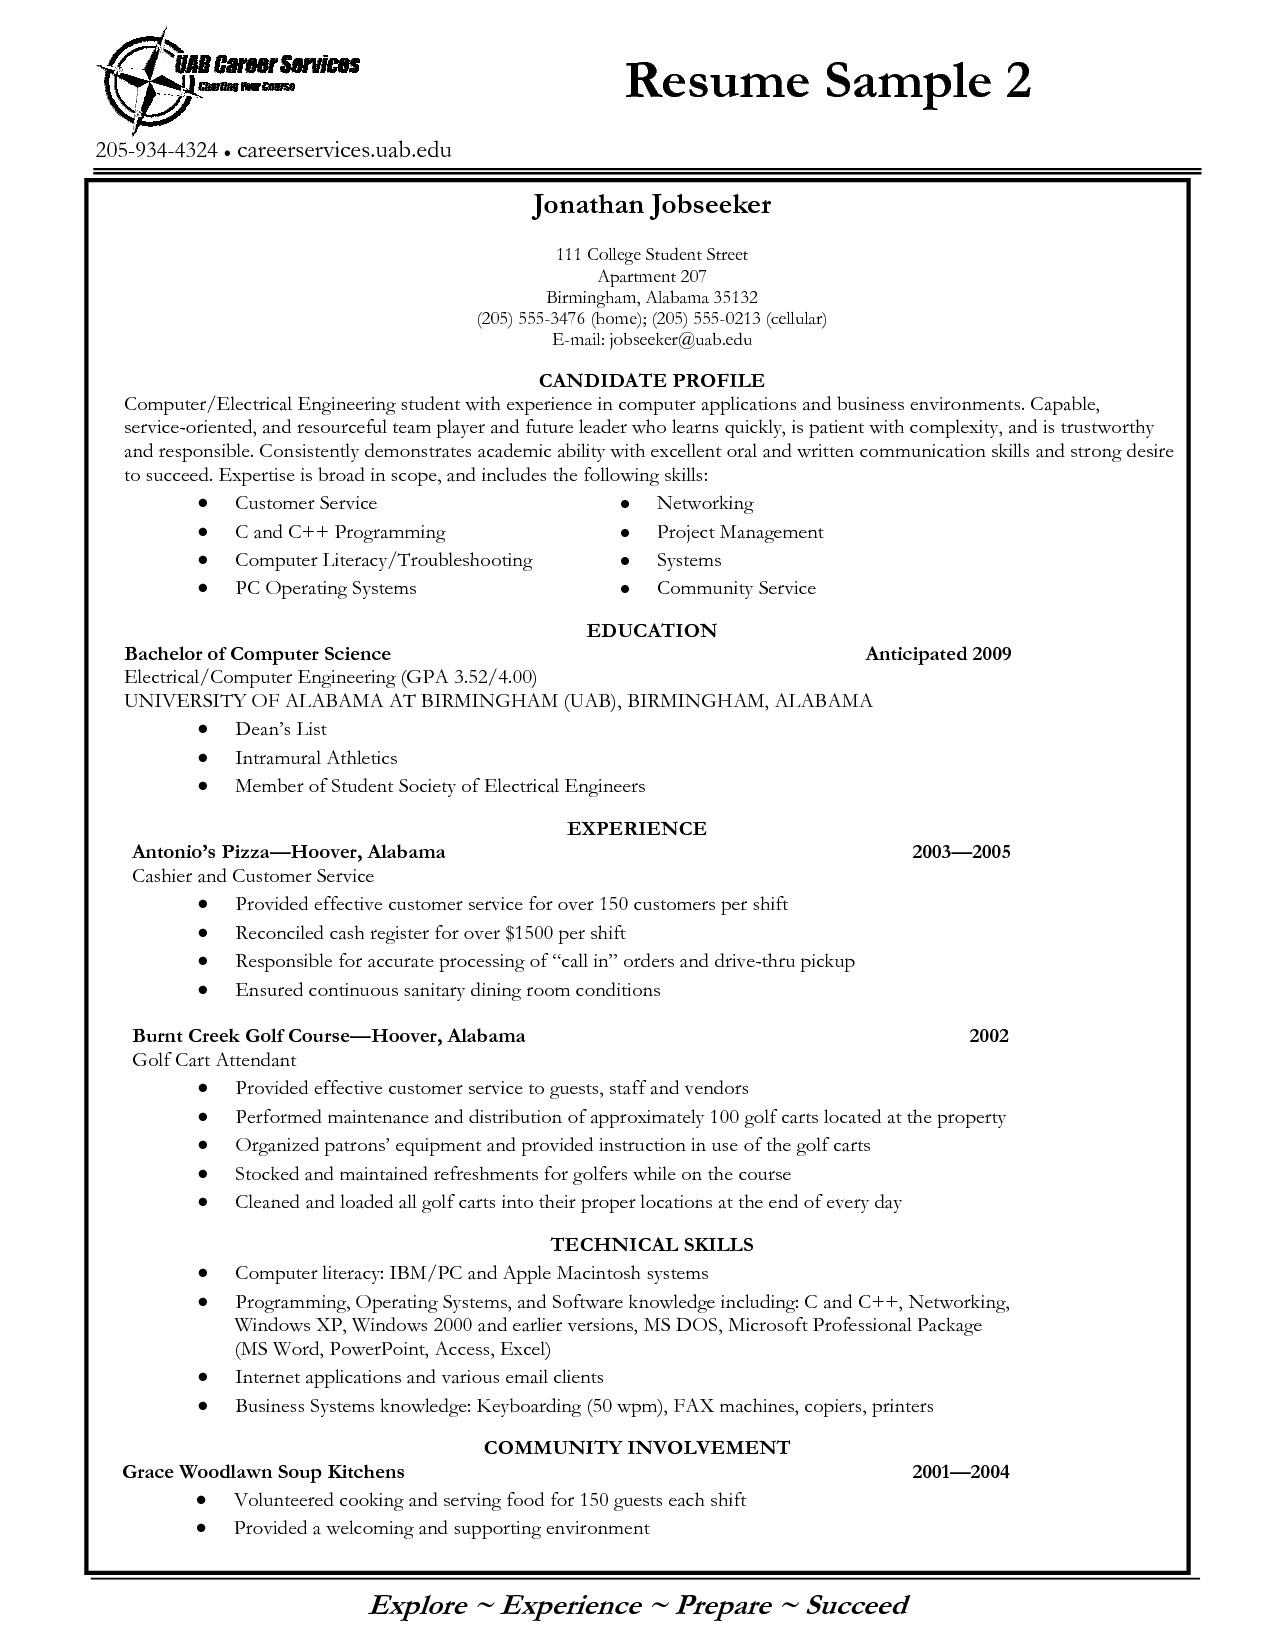 tags college graduate resume no experience college